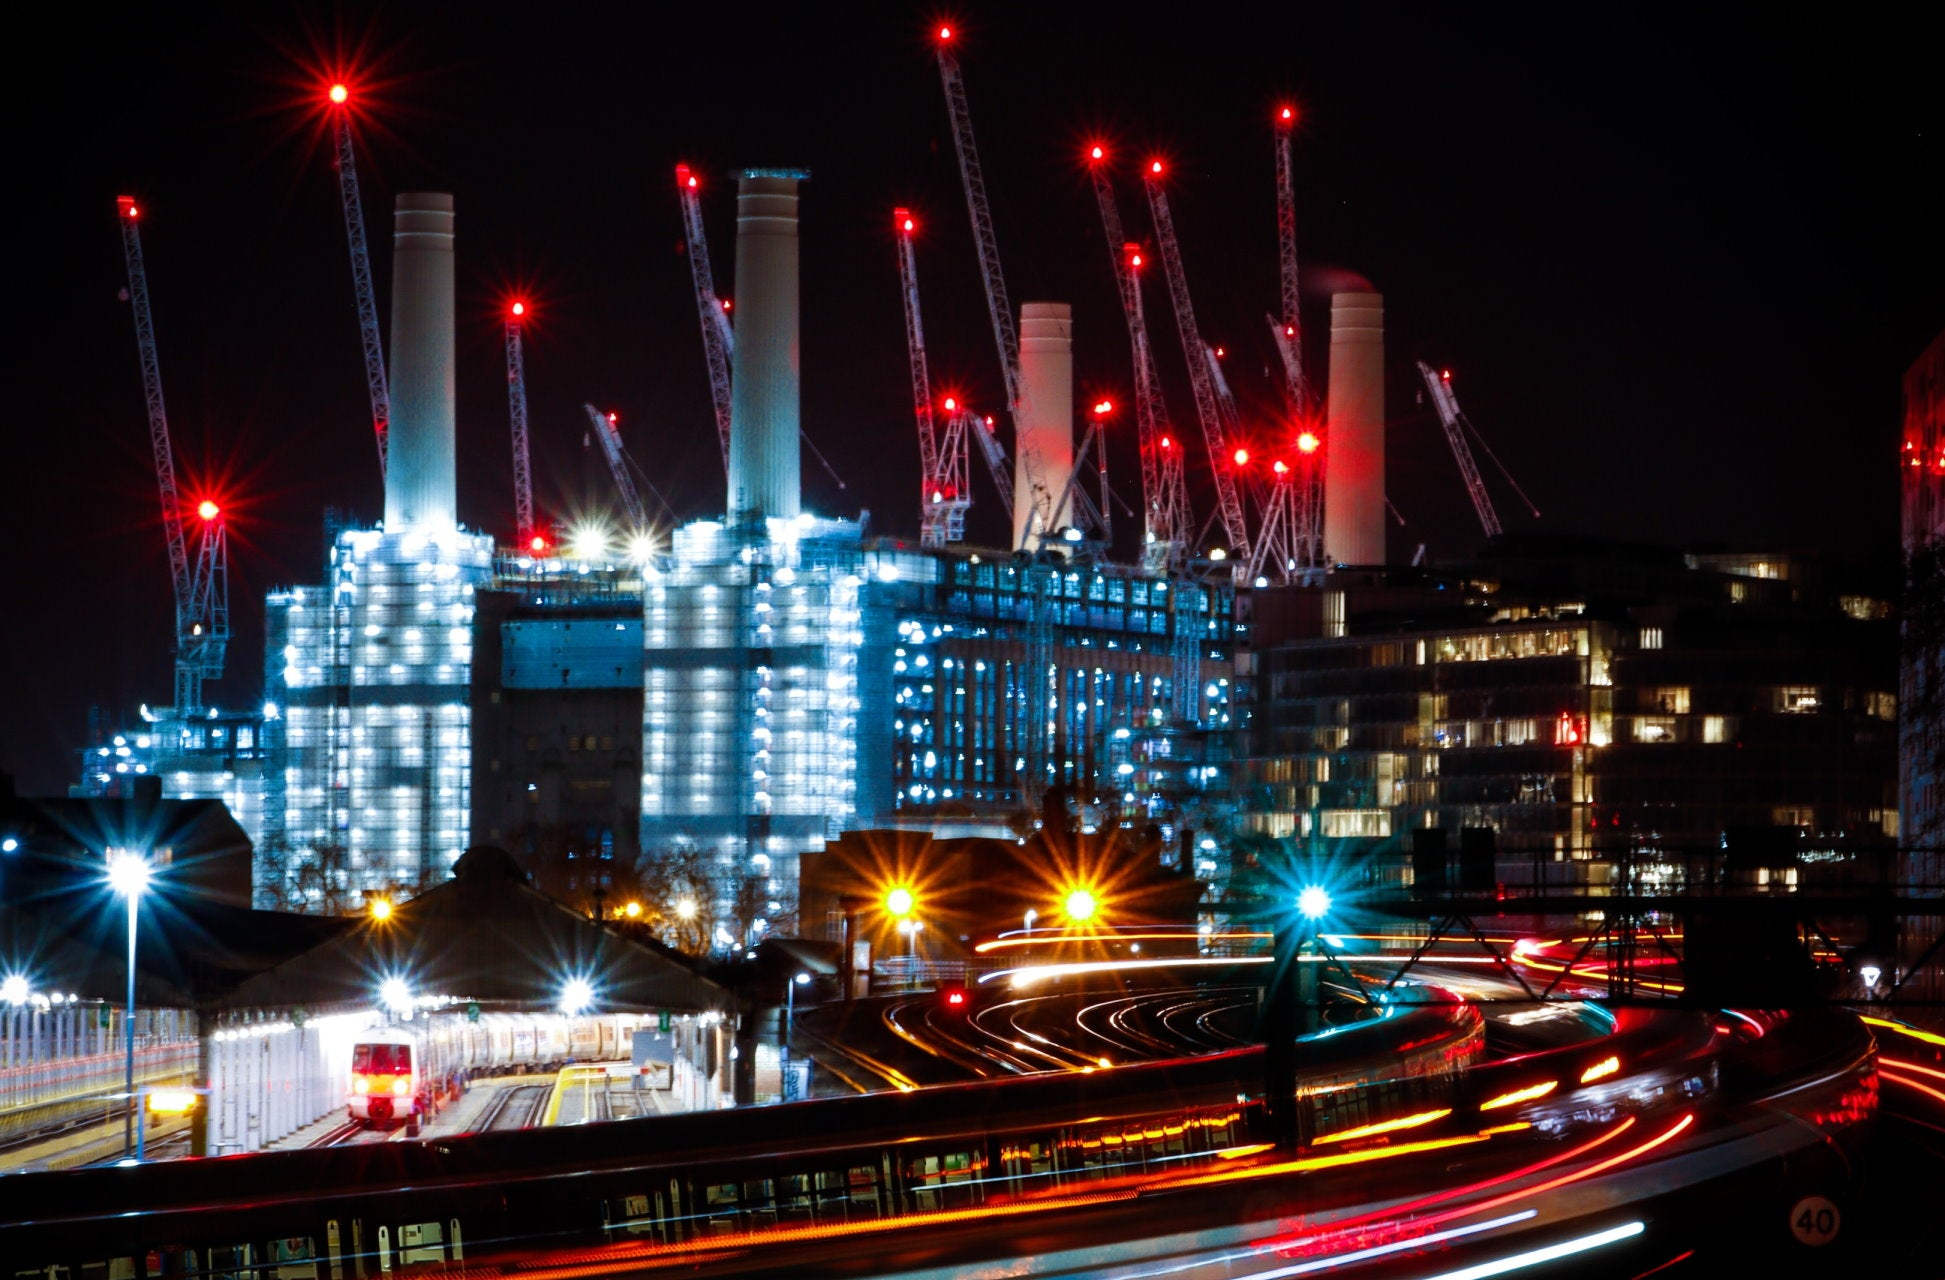 Battersea Power Station Then, Now & The Future